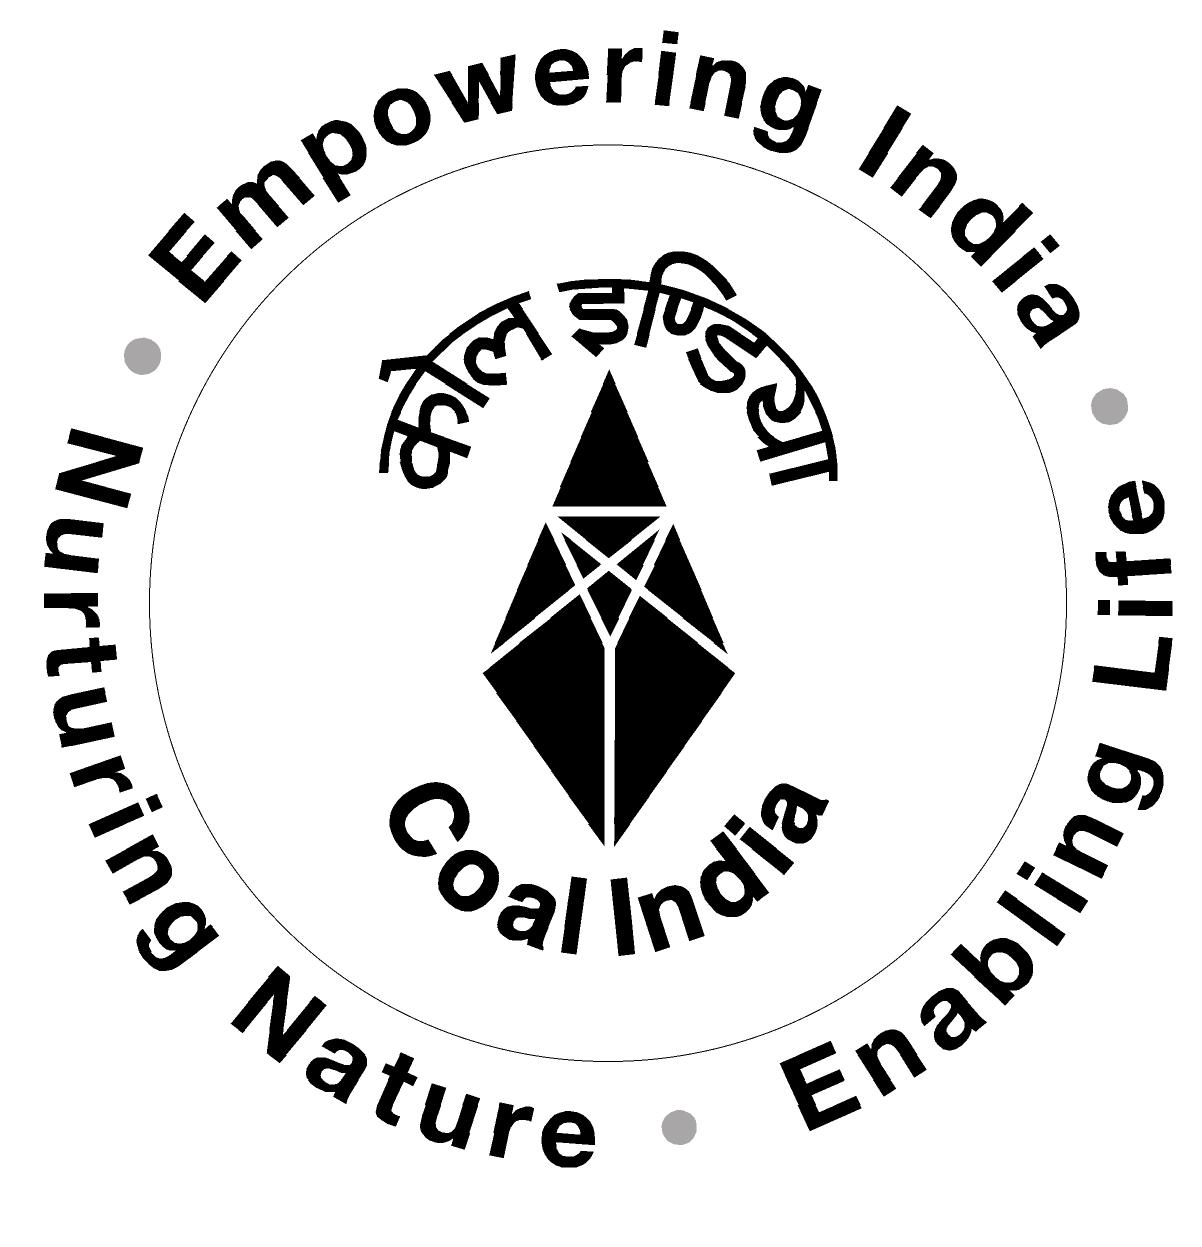 Coal India Plans To Add 1 GW Solar Power Capacity